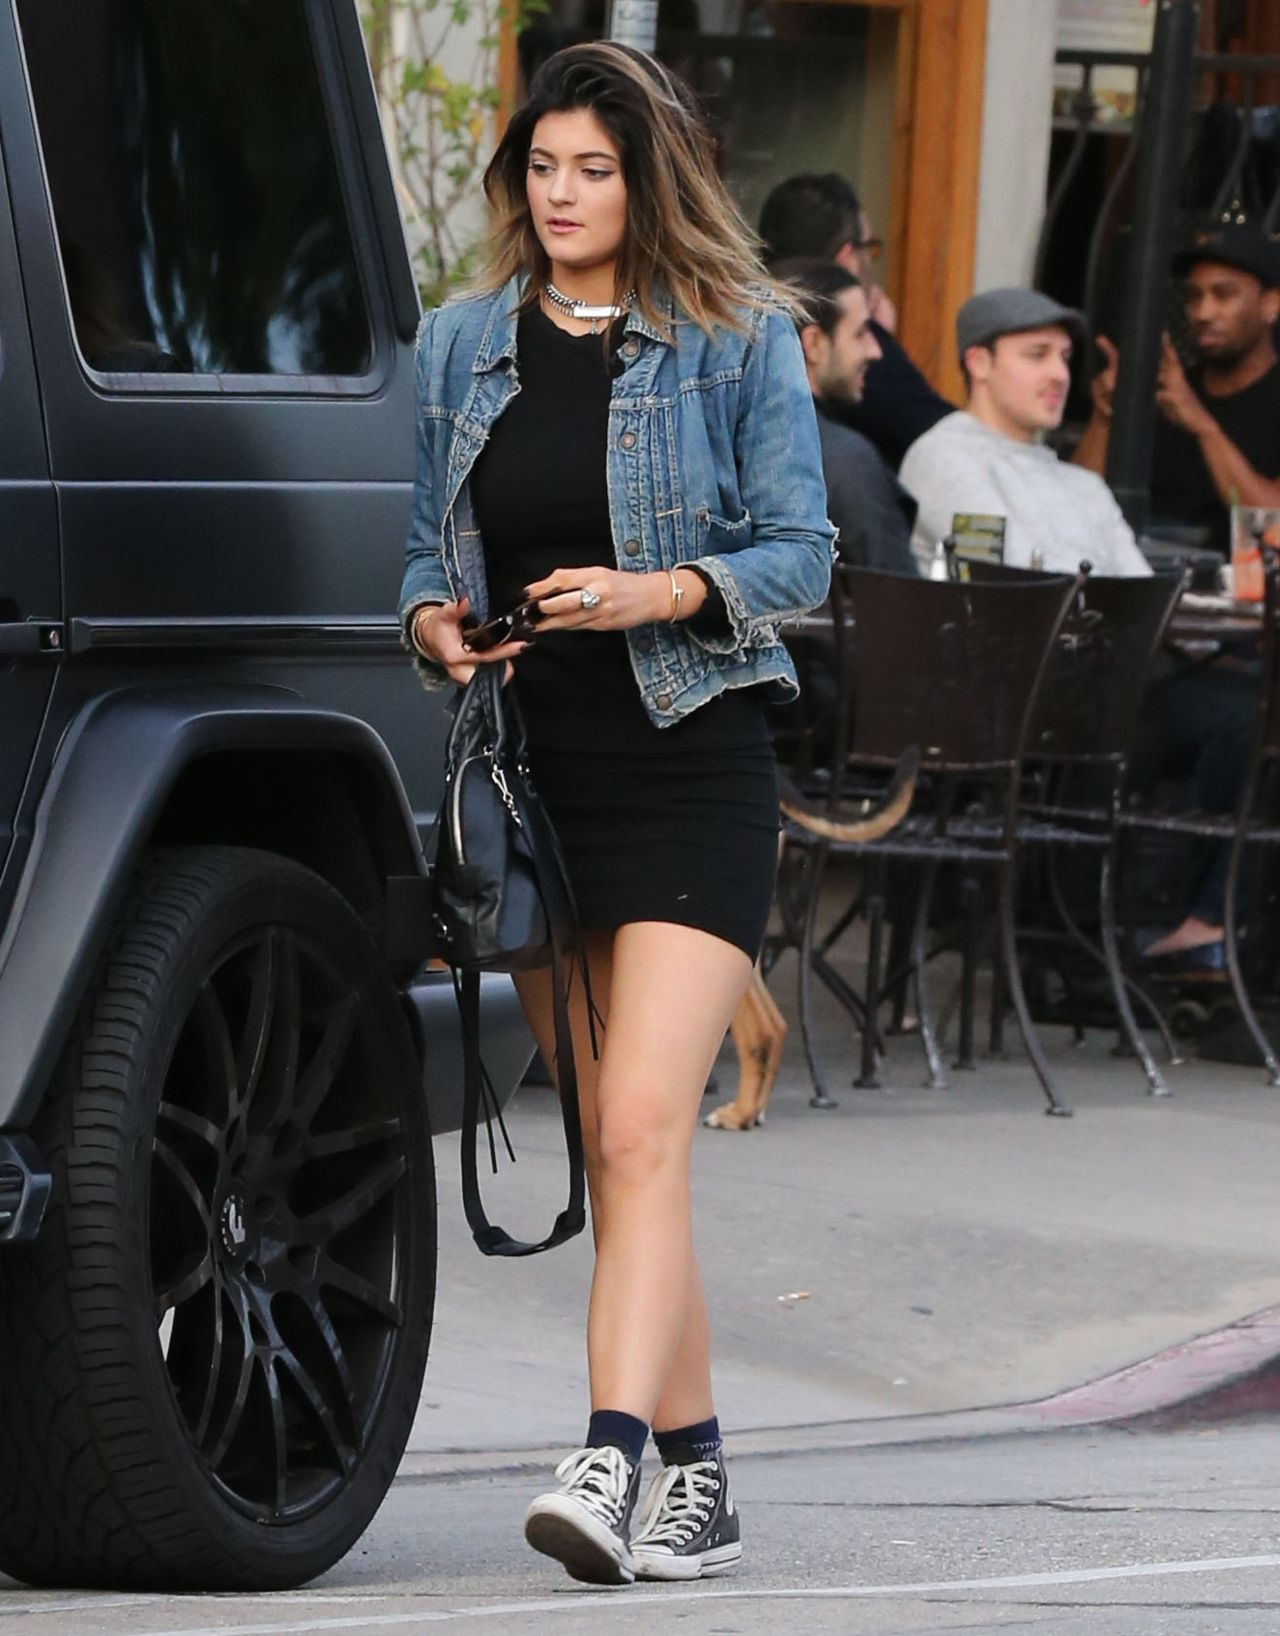 kylie-jenner-street-style-out-in-west-hollywood-march-2014_5